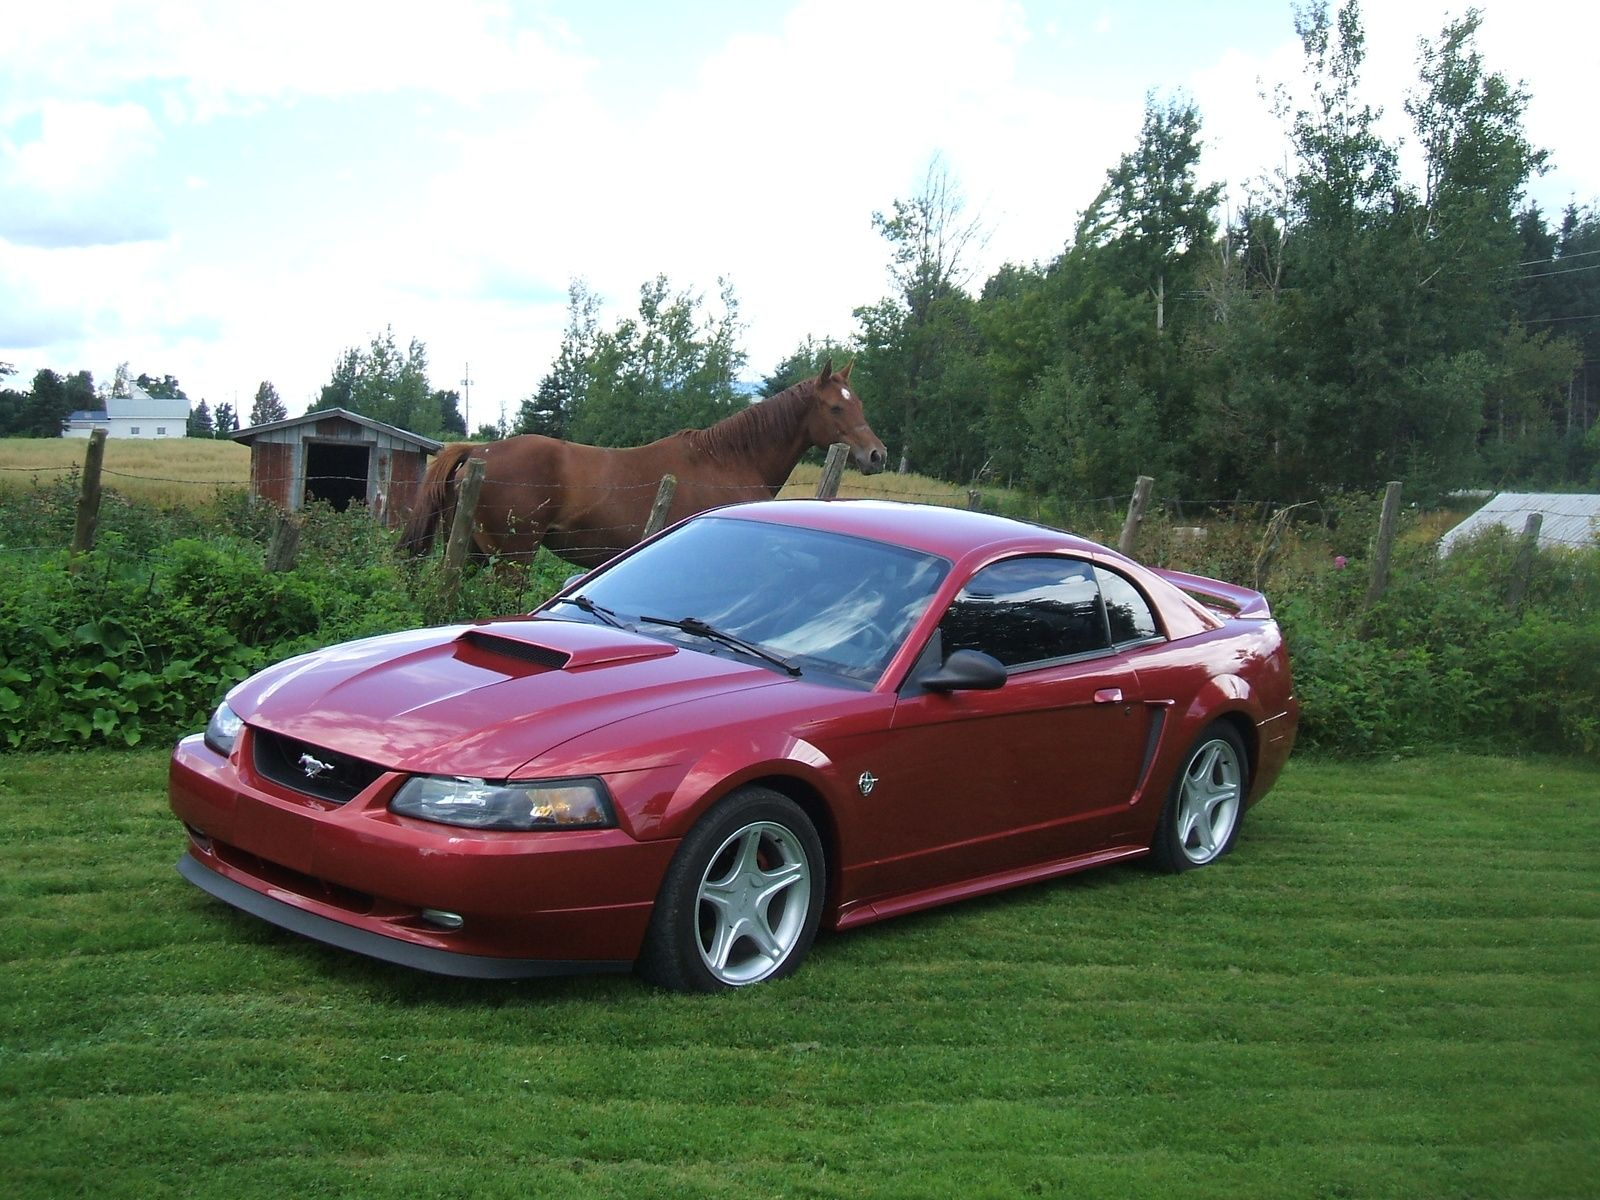 Ford Mustang 1999 Ford Mustang Gt Coupe Pictures 1999 Ford Mustang 2 Dr Gt Coup Mustang Mustang Cobra Ford Mustang